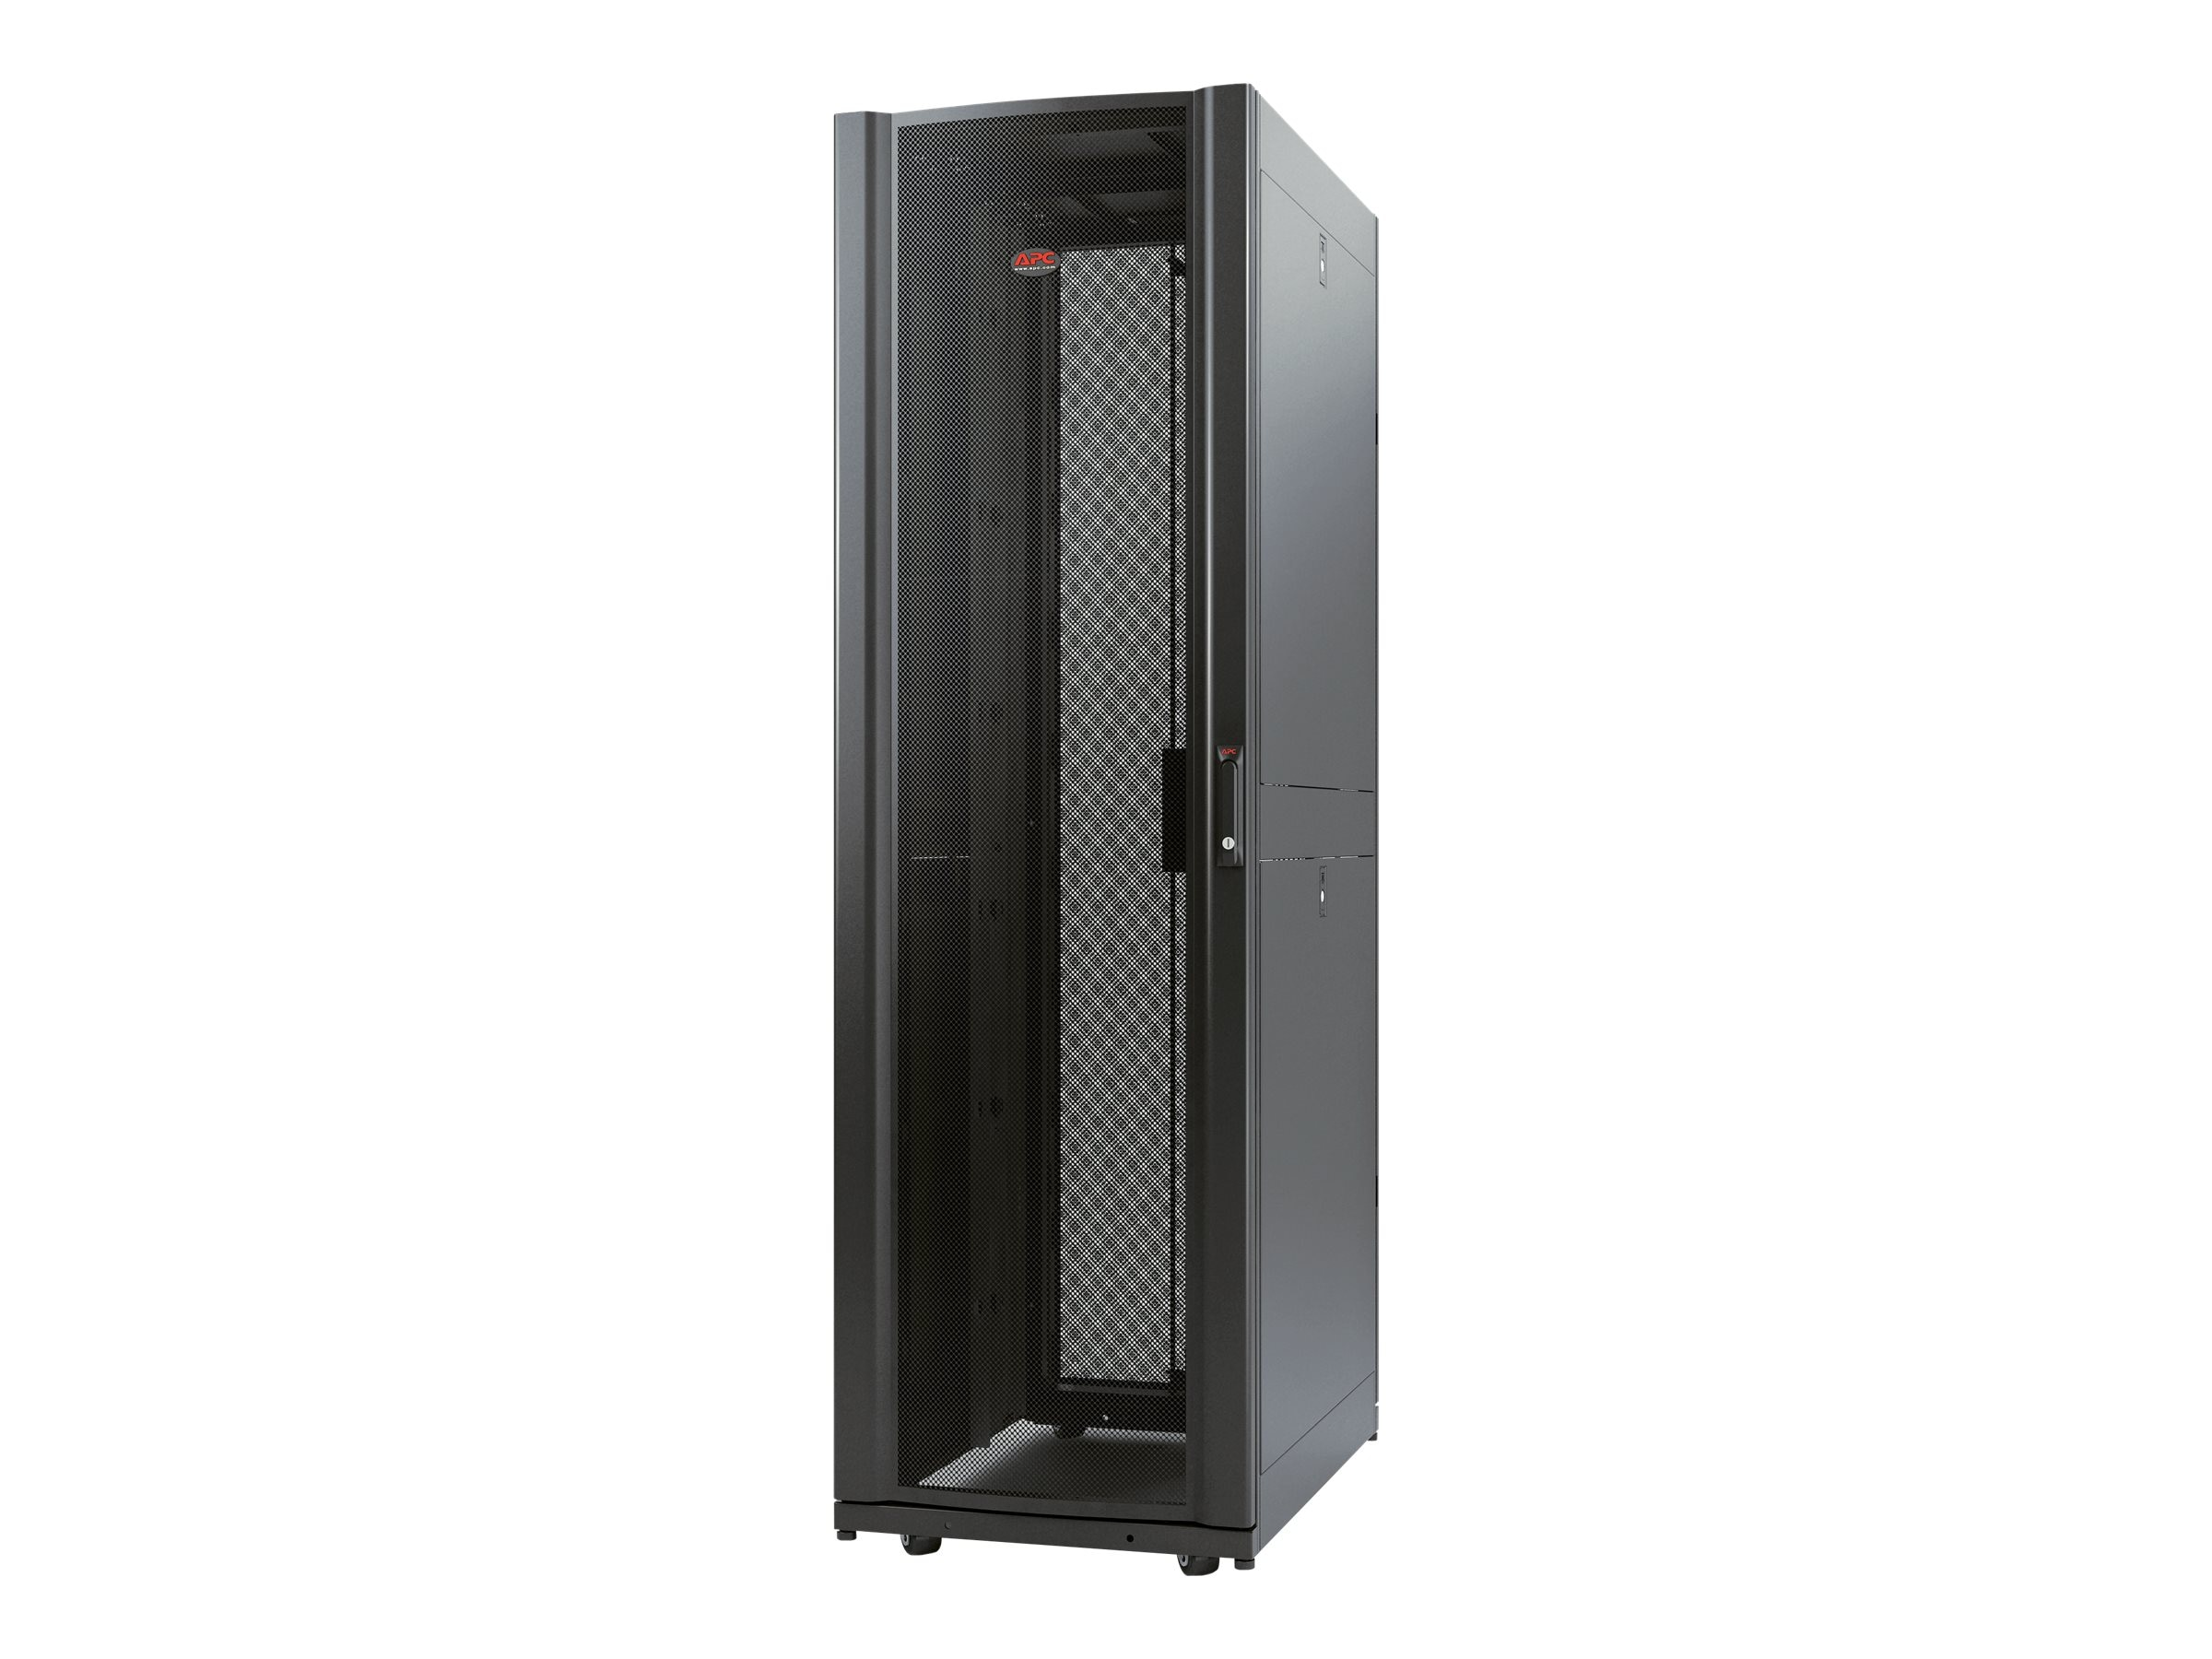 APC NetShelter AV 42U 600mm Wide x 825 Deep Enclosure with Sides and 10-32 Threaded Rails, Black